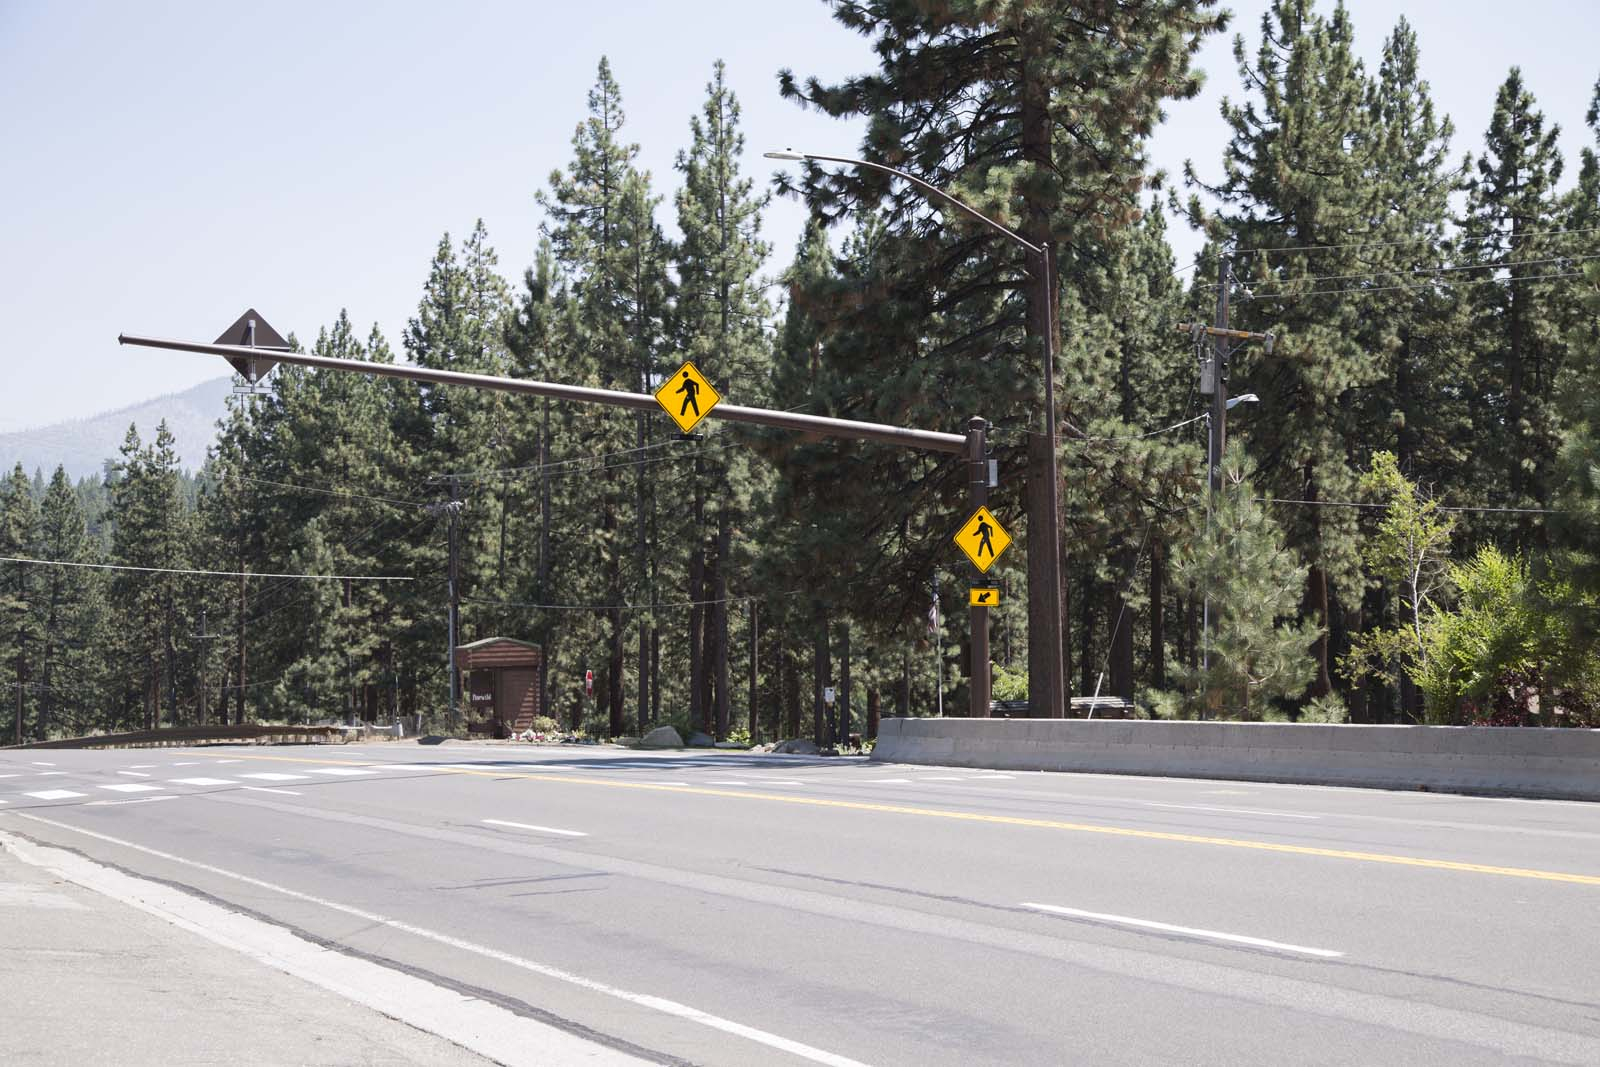 The pedestrian crossing in Lake Tahoe at Lakeview